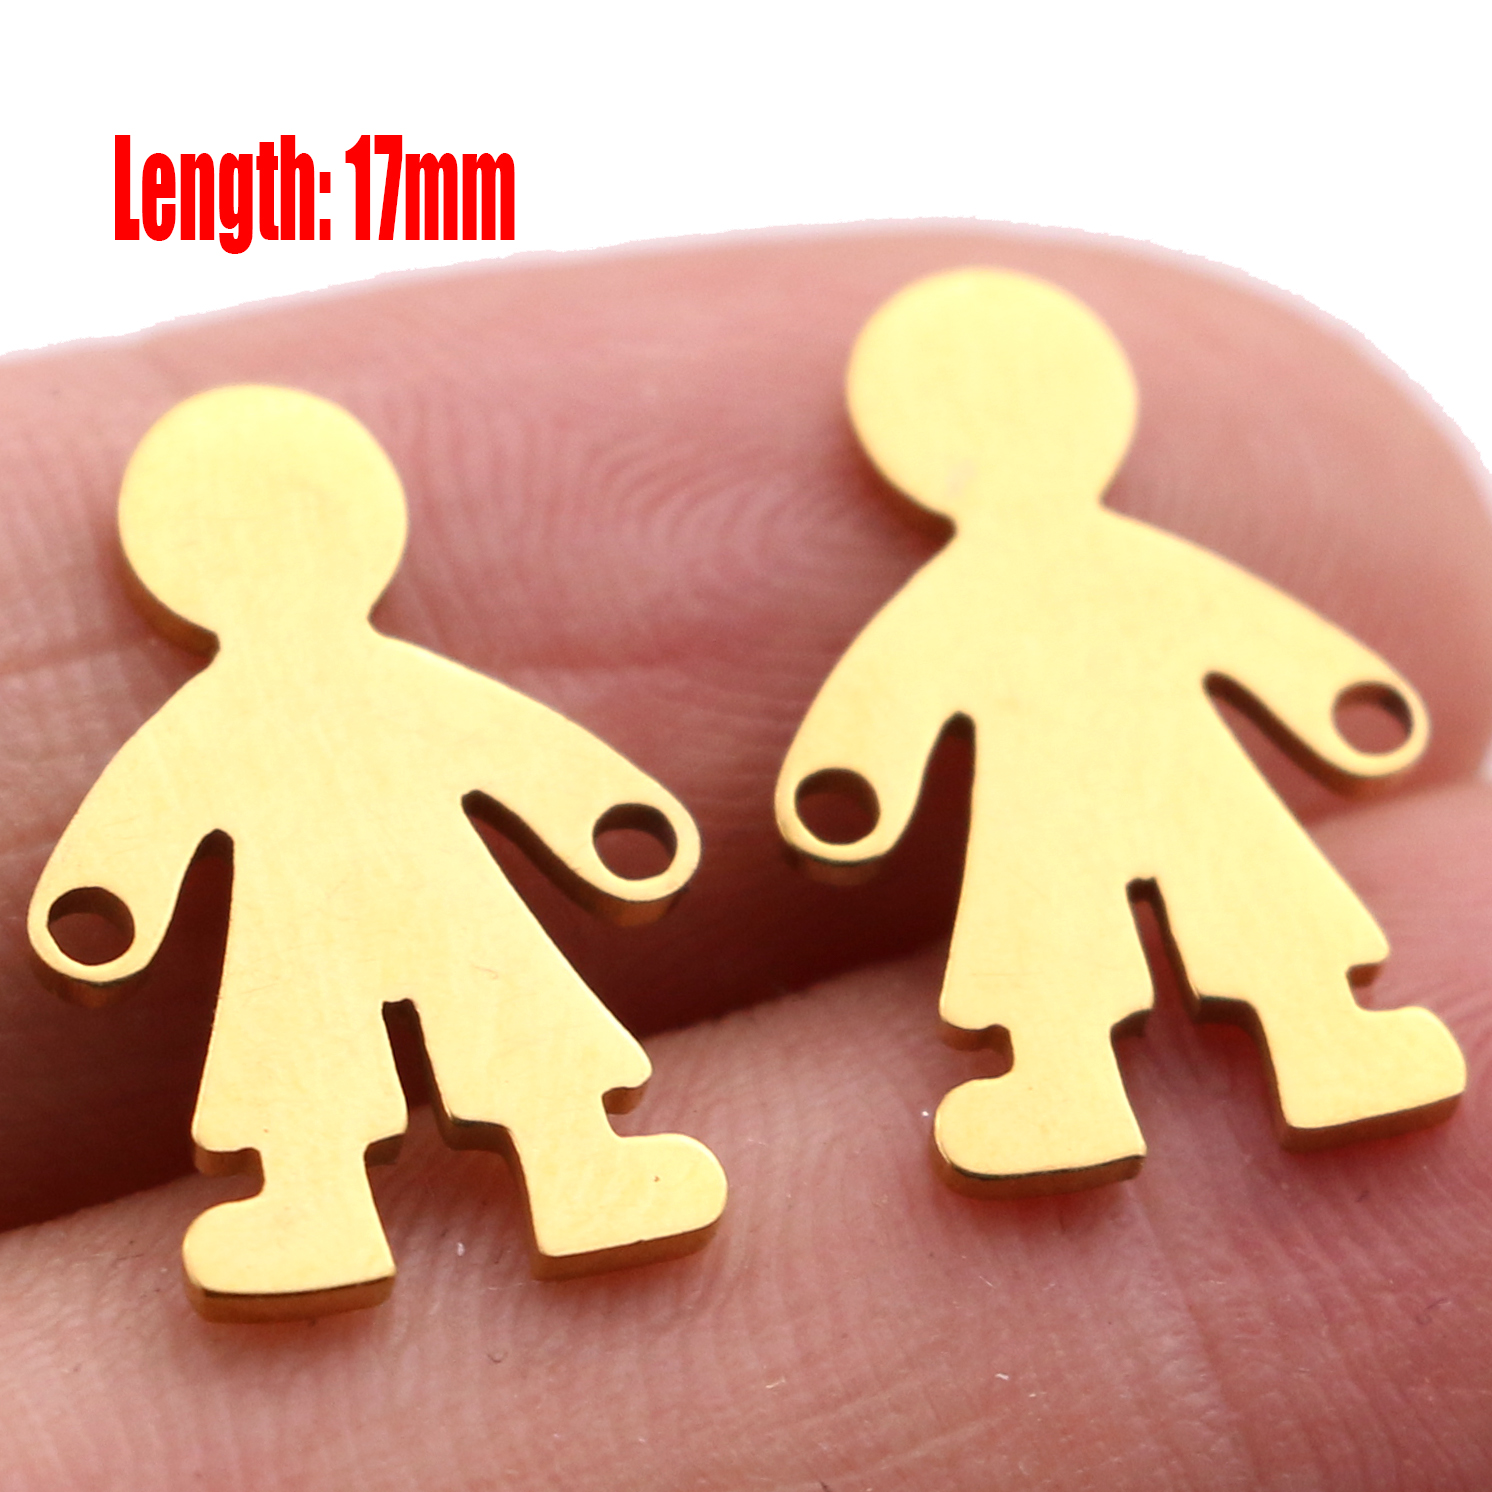 5pcs Family Chain Stainless Steel Pendant Necklace Parents and Children Necklaces Gold/steel Jewelry Gift for Mom Dad New Twice - Цвет: Gold 17